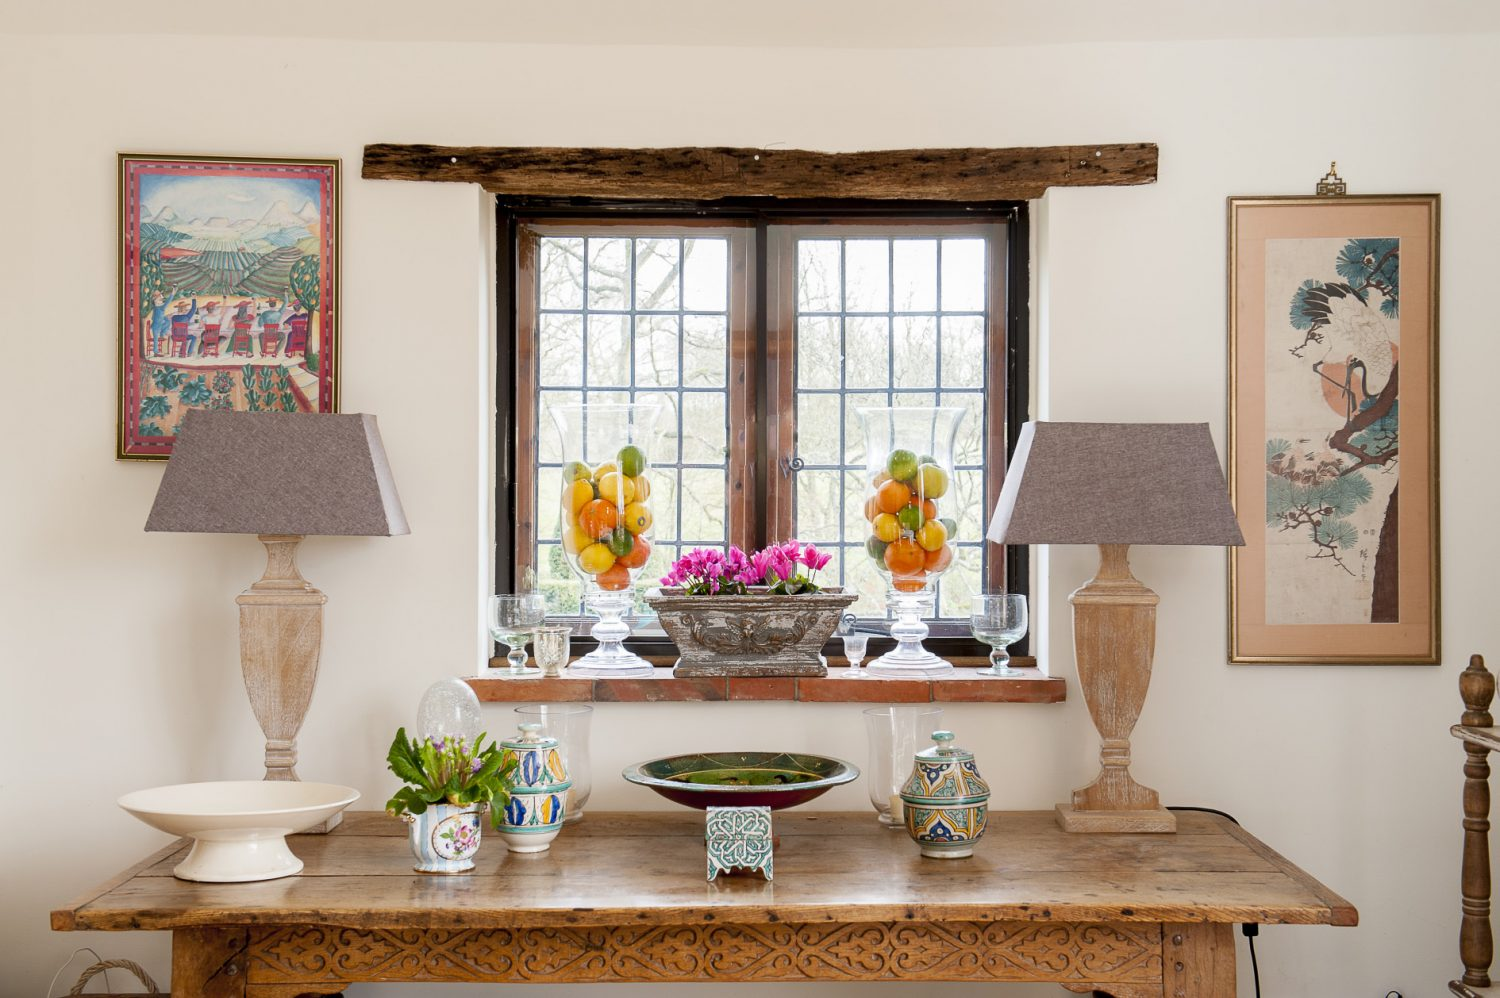 The new kitchen extension was built by Hurstway Construction. The lamps on the sideboard (above) came from one of the Wealden Times Fairs and the trough/planter in the middle of the windowsill is from Capital to Coast in Cranbrook